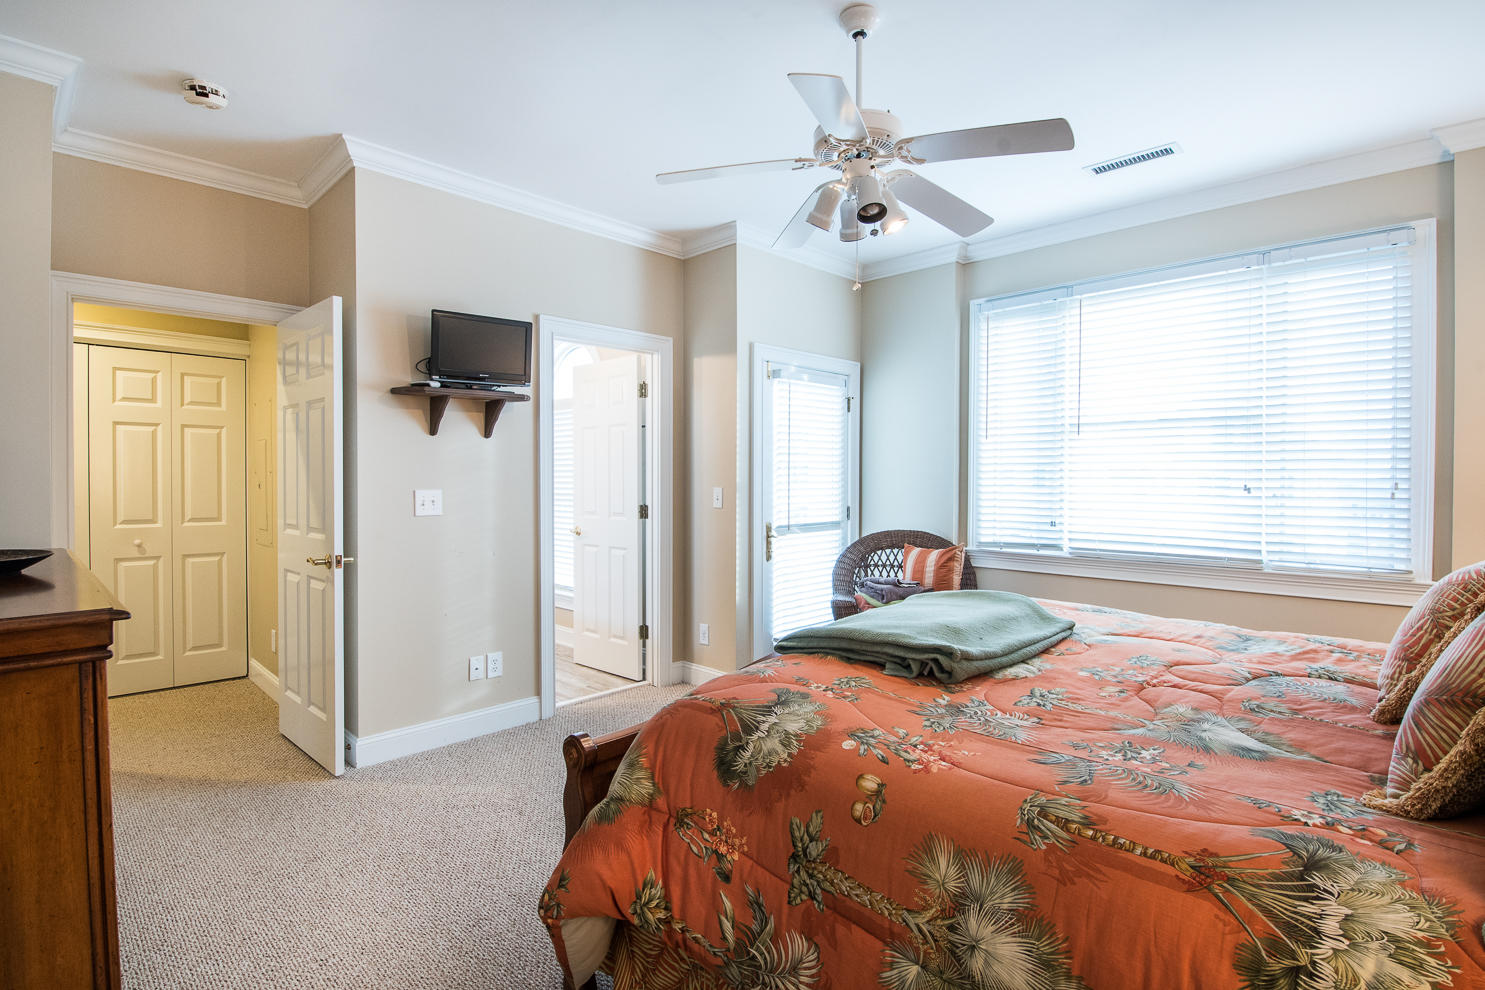 Tolers Cove Homes For Sale - B-4 & B-5 Tolers Cove Marina 70ft + Home, Mount Pleasant, SC - 6